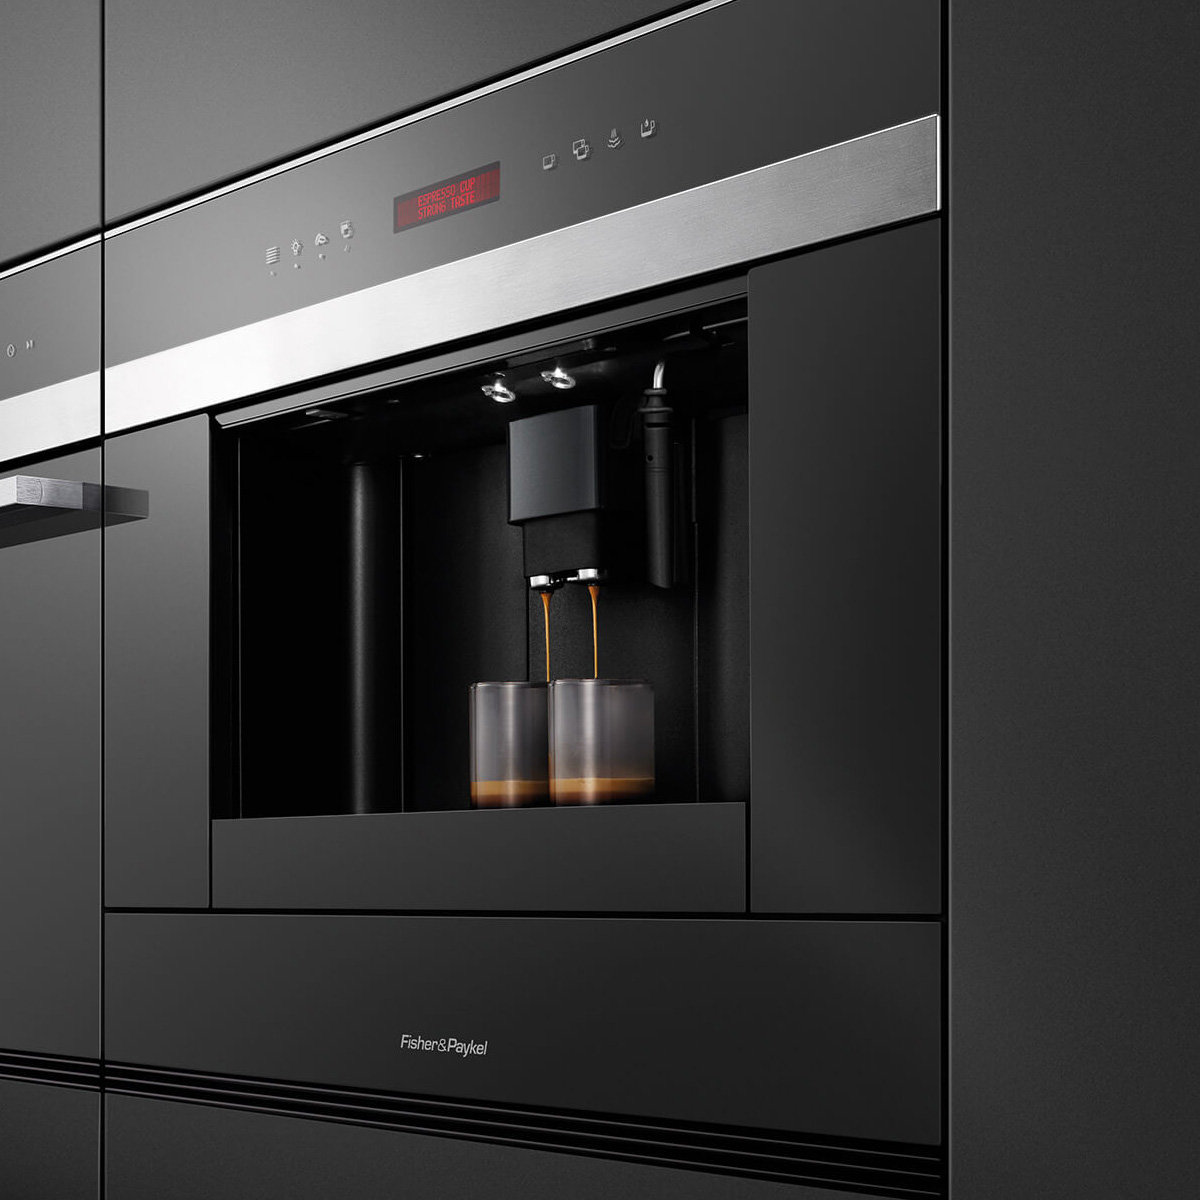 Fisher paykel eb60dsxb1 built in coffee machine appliances online